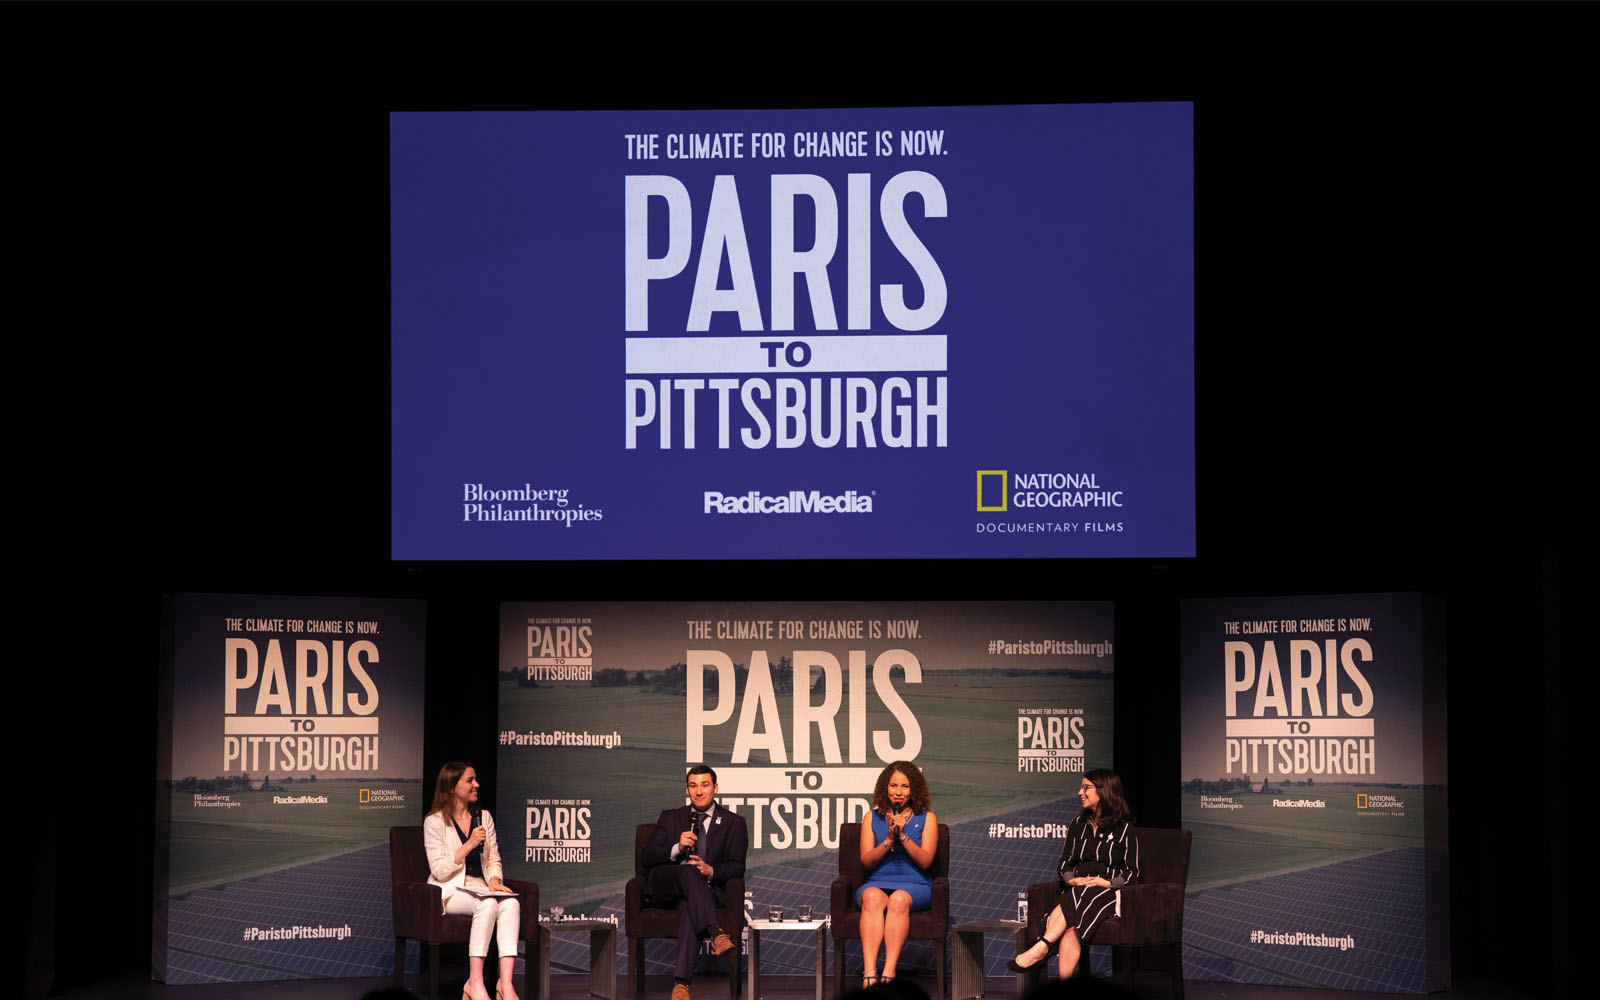 Panelists at an advance screening of Paris to Pittsburgh in Orlando, Florida.